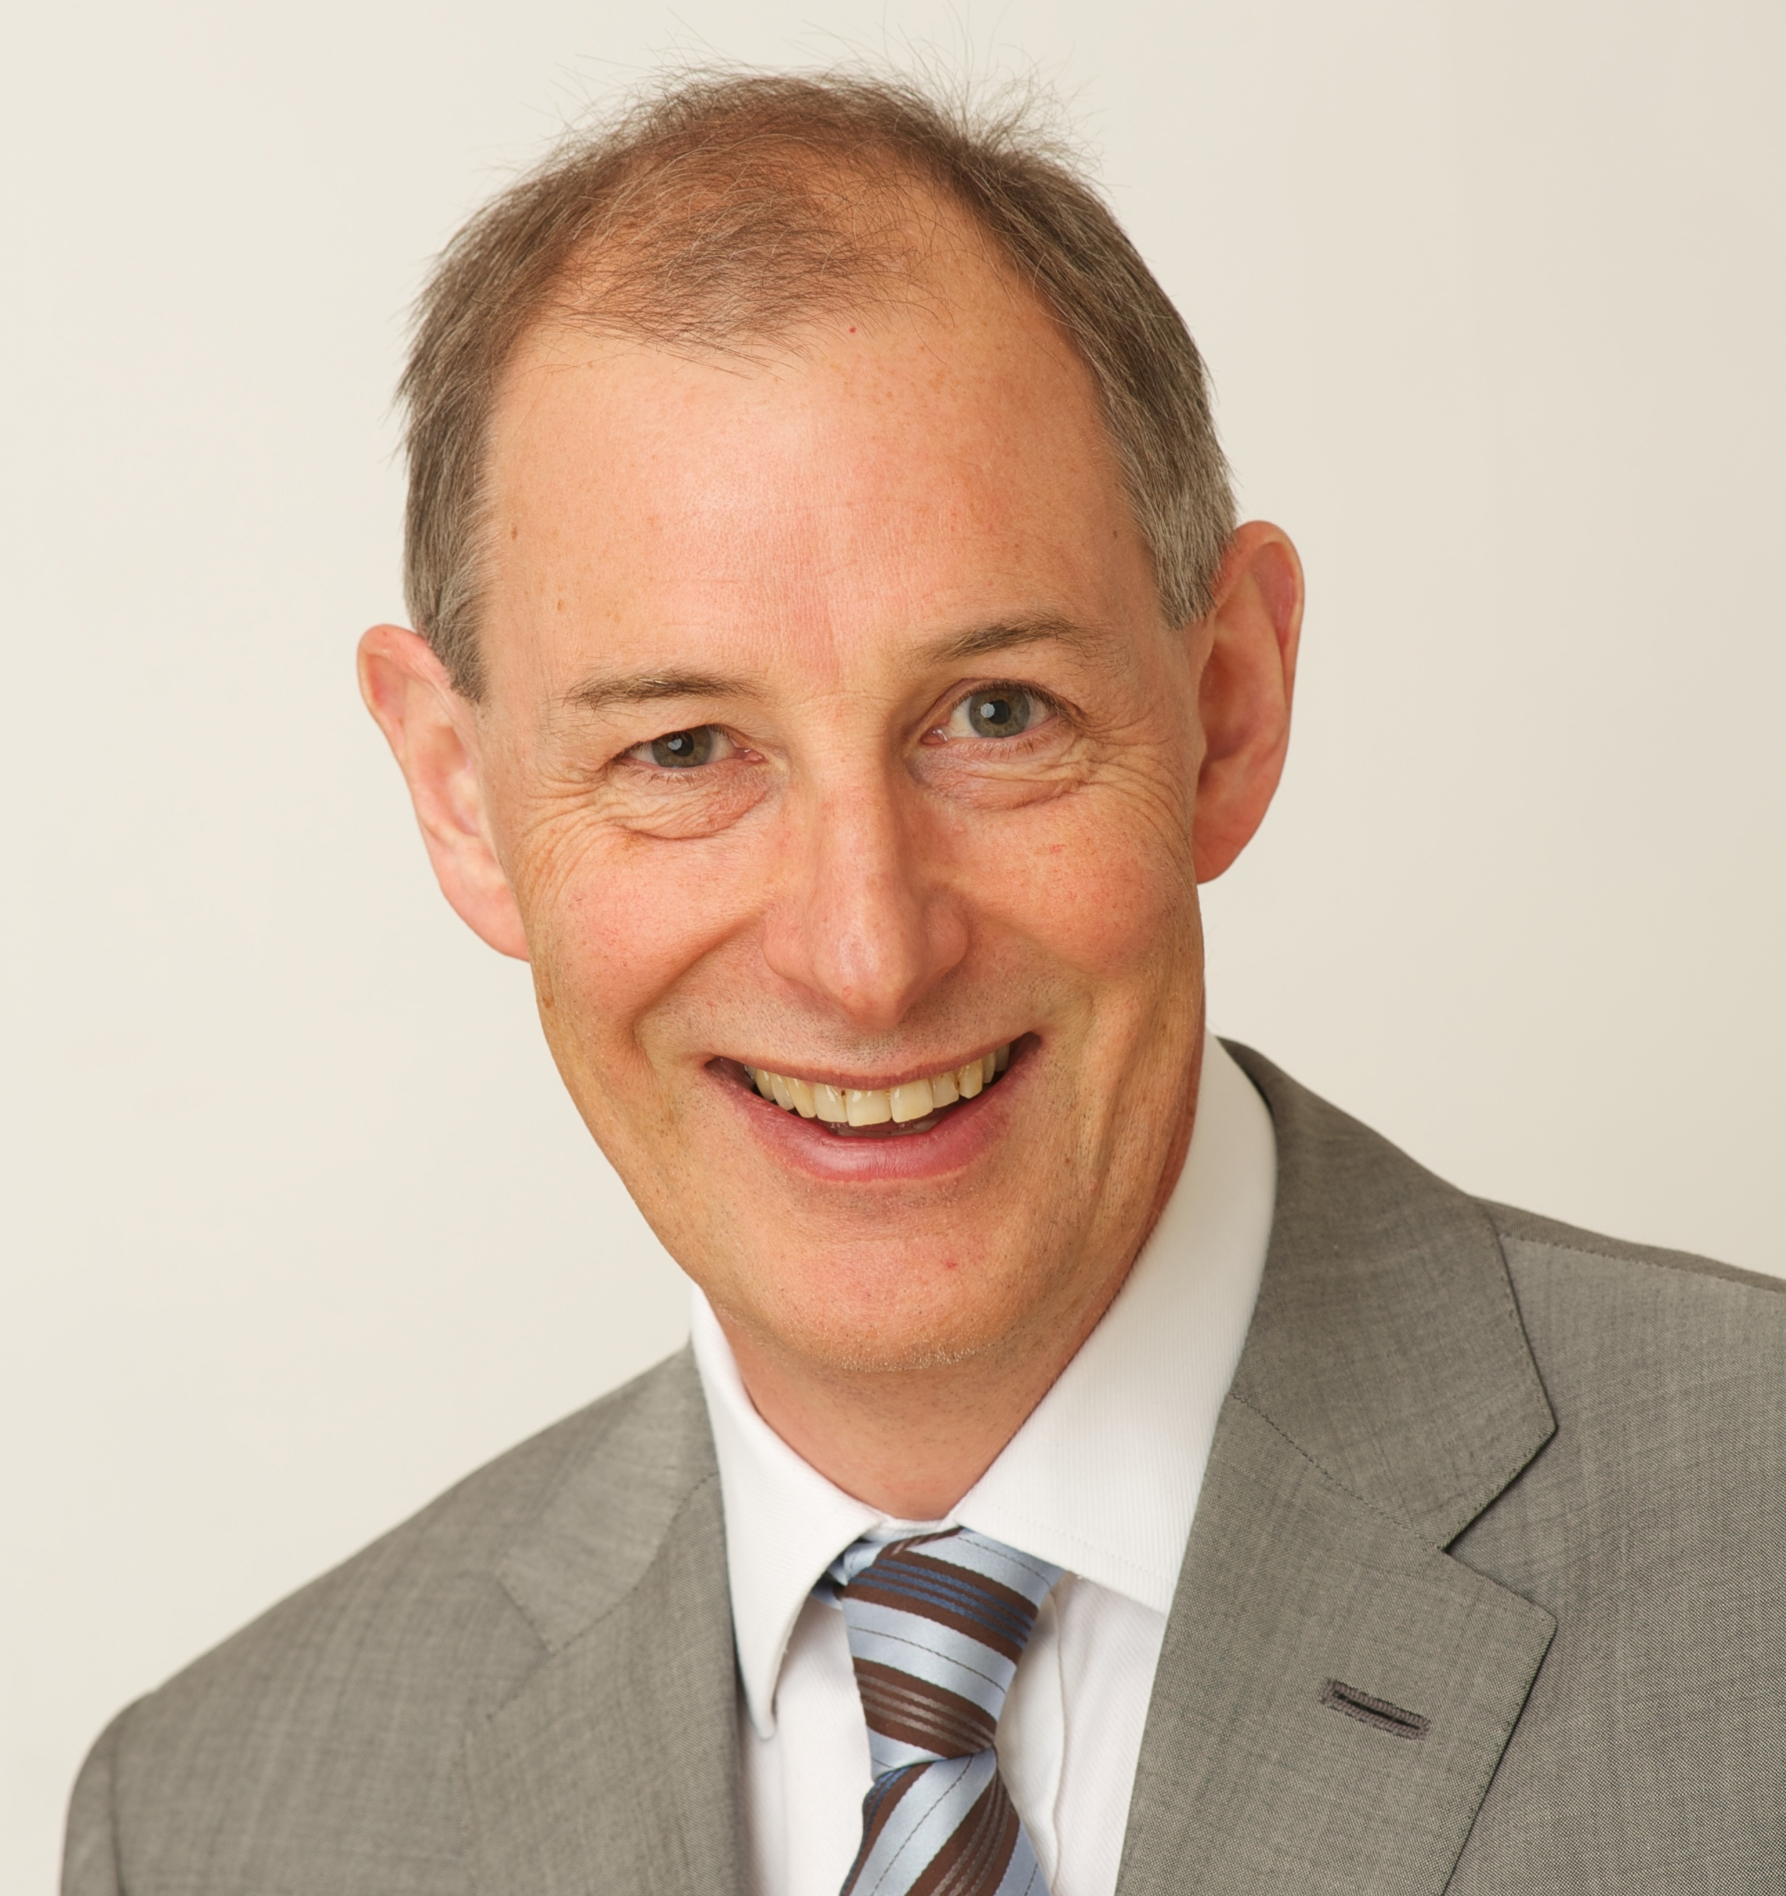 Alan has more than 25 years experience as a Medical Director in the medtech industry most recently as Chief Medical Officer for GE Healthcare. Alan has also previously practiced Paediatrics and Neonatal medicine.